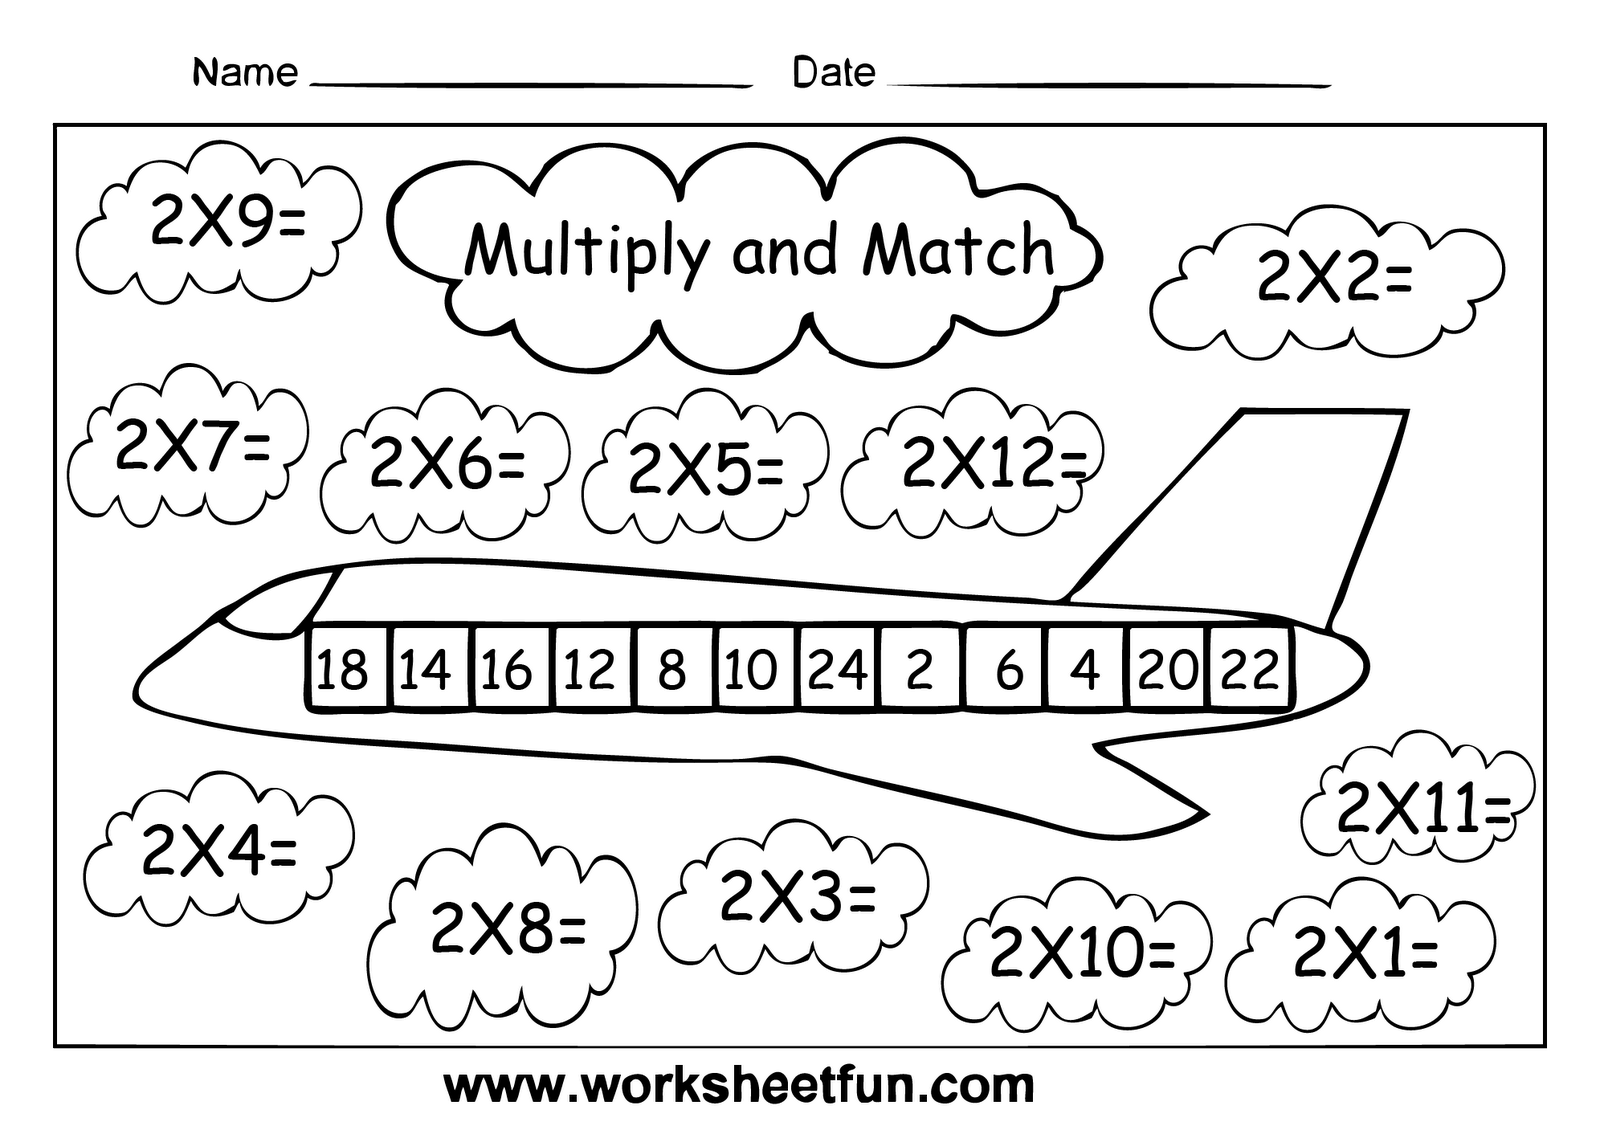 Printables Multiplying By 2 Worksheets by 2 worksheets scalien multiply scalien